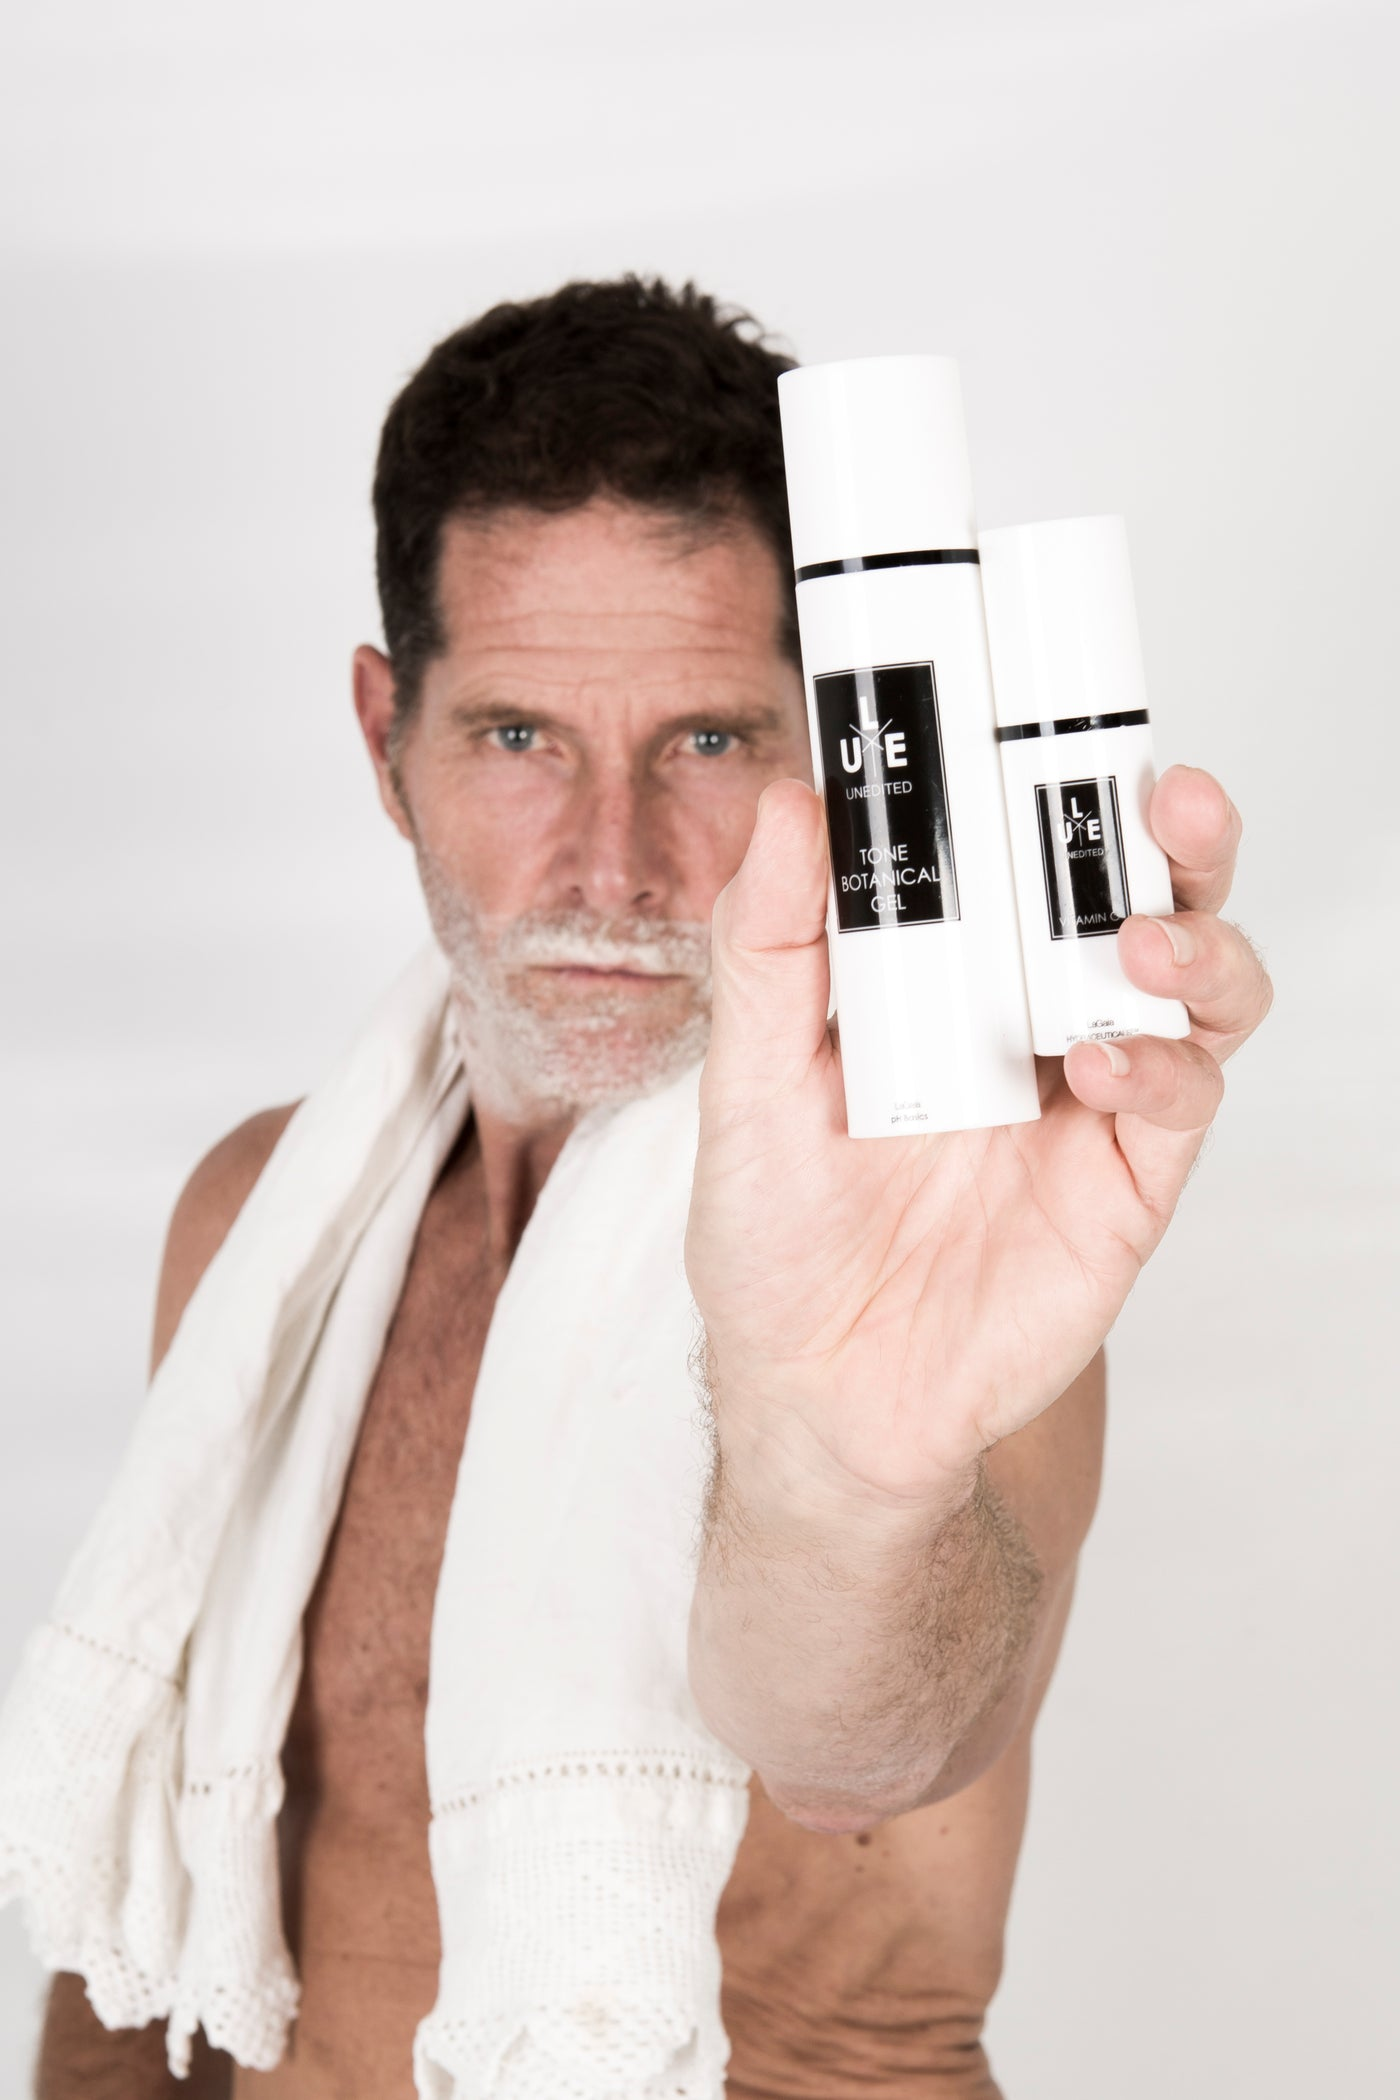 Skin-Care for Men: The Essentials for Men's Skin-Care Routines